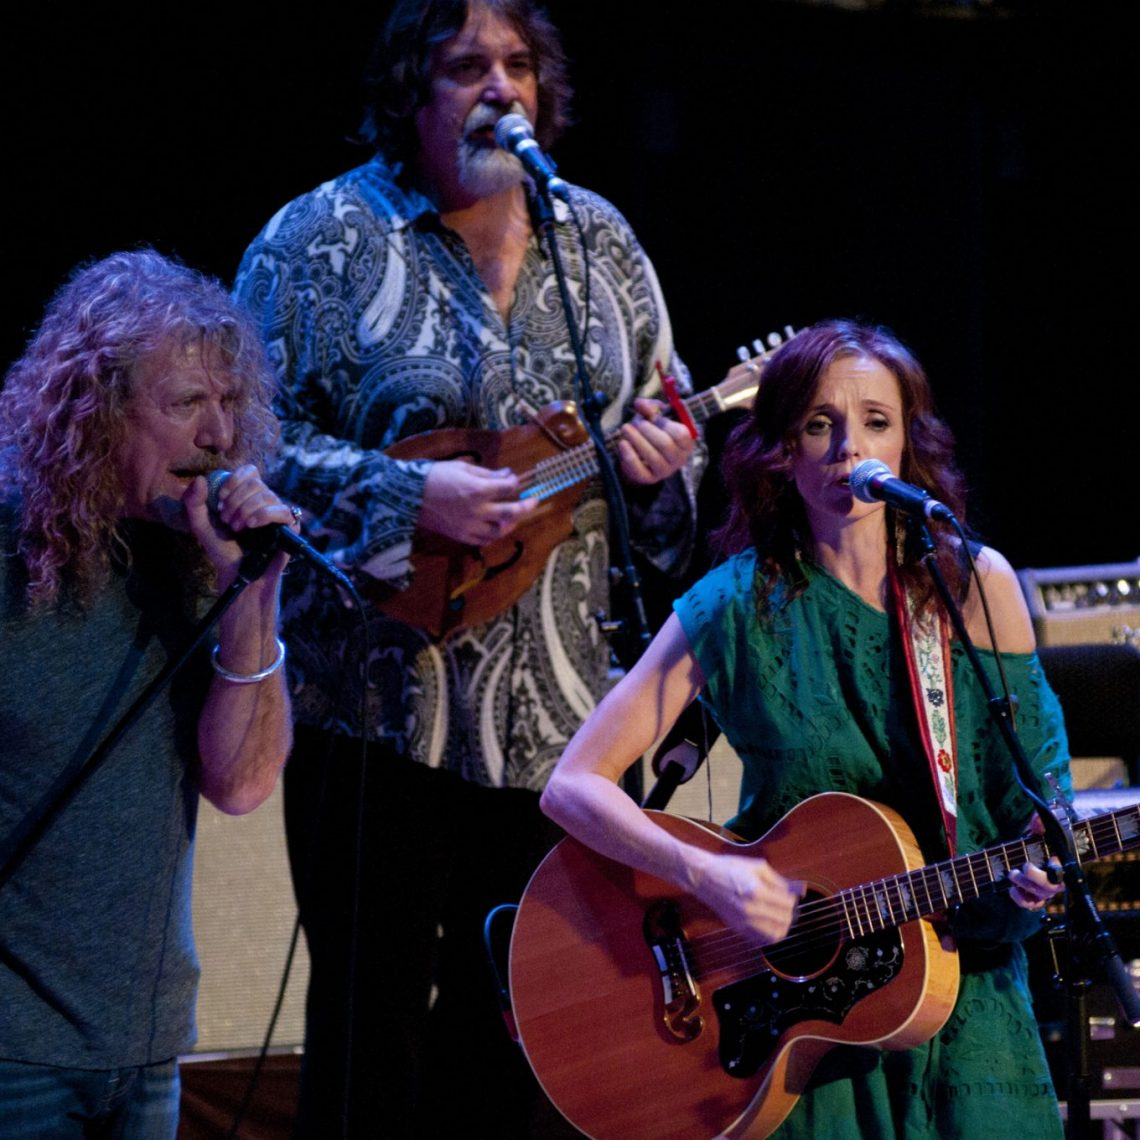 Robert Plant, Darrell Scott and Patty Griffin at the Americana Music Awards. (Photo by Nichole Wagner)